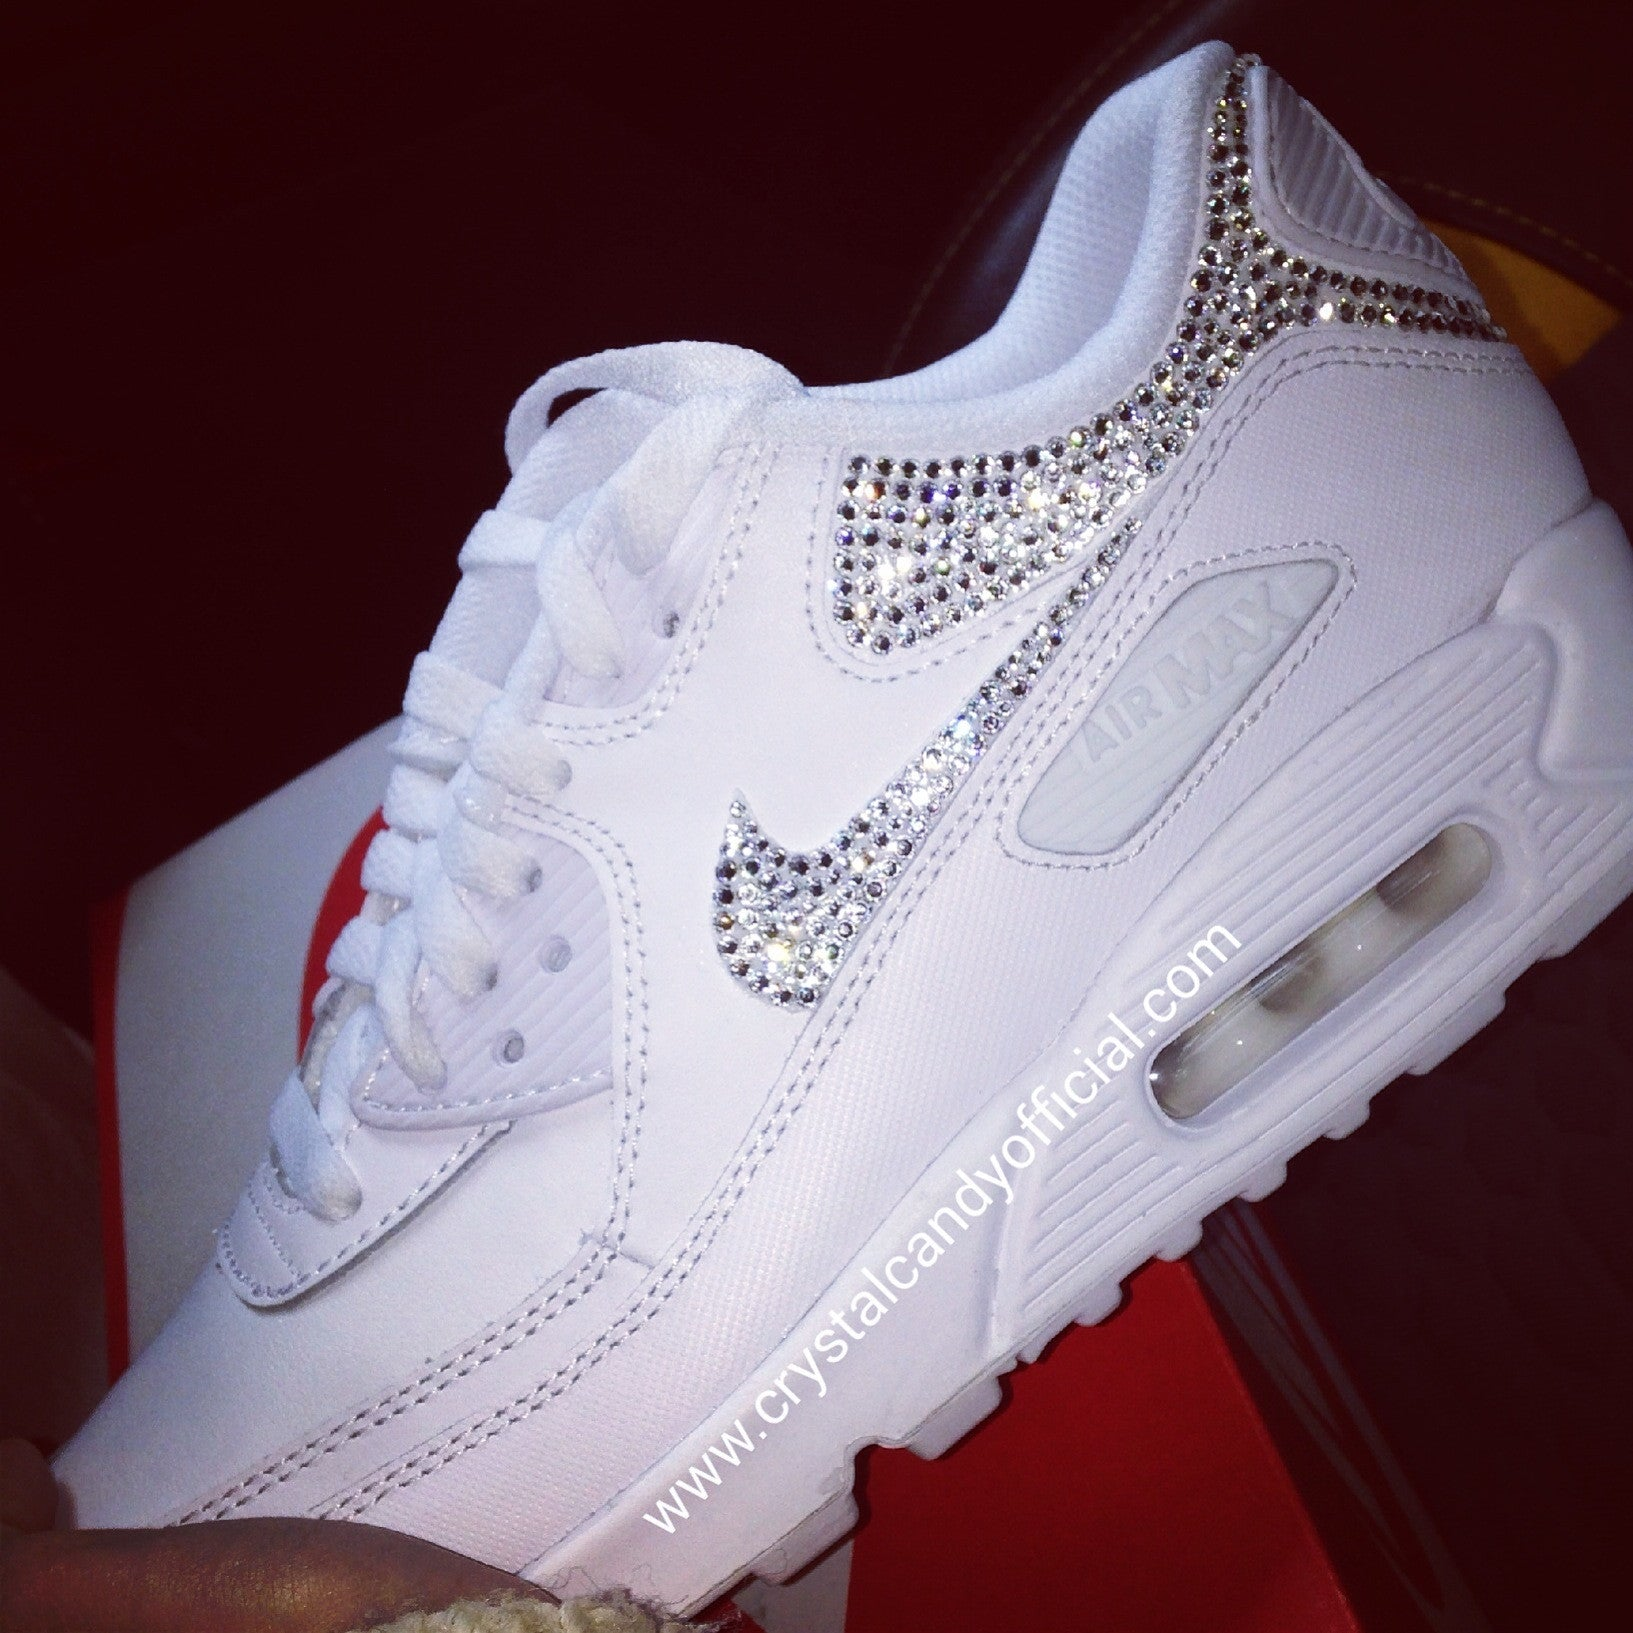 Crystal Nike Air Max 90 s in White (backs   ticks) - Crystal Candy ... 53fe0fa1e8